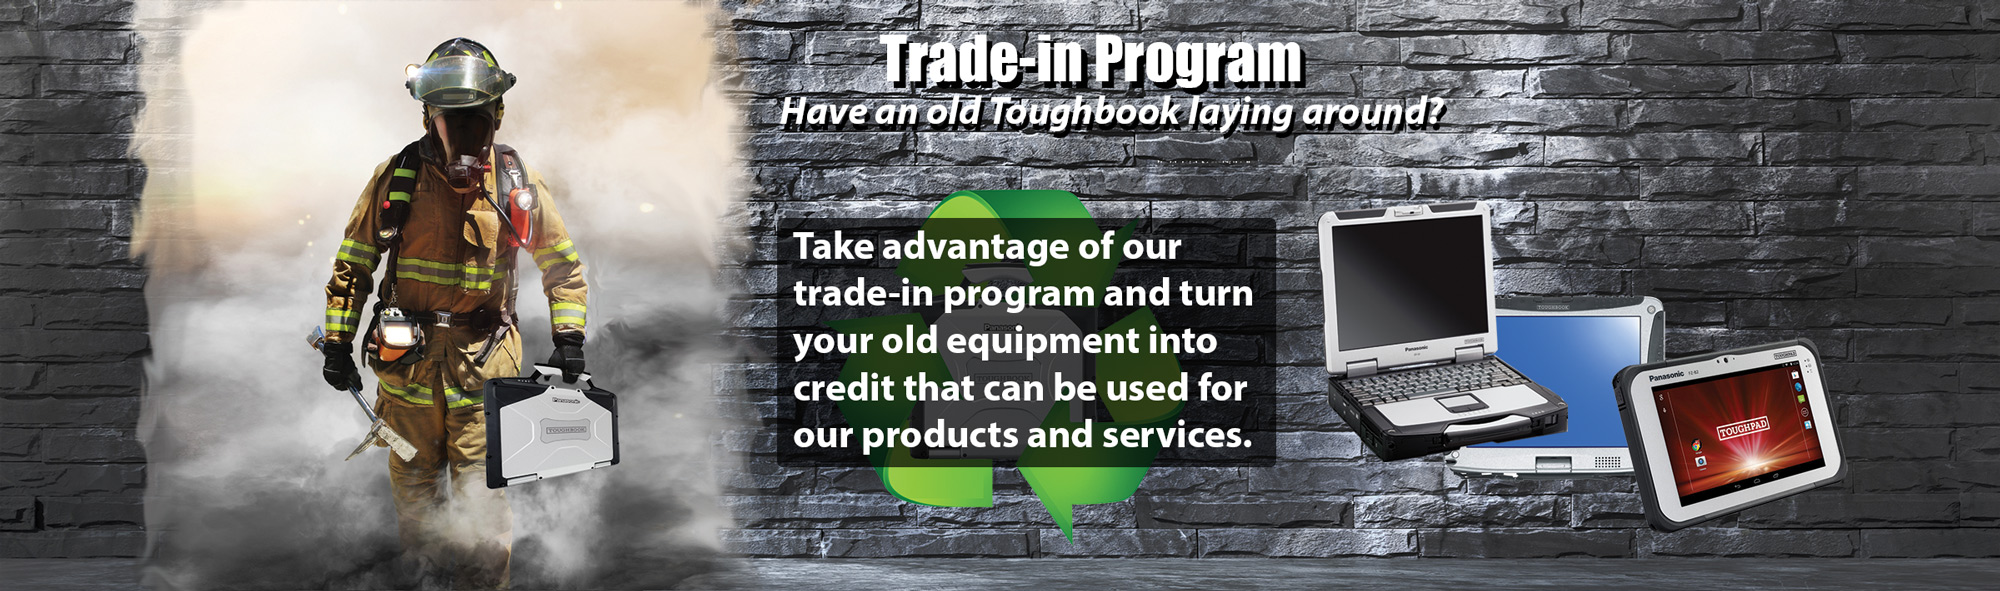 Take advantage of our trade-in program and turn your old Panasonic Toughbook into credit that can be used for our products and services.